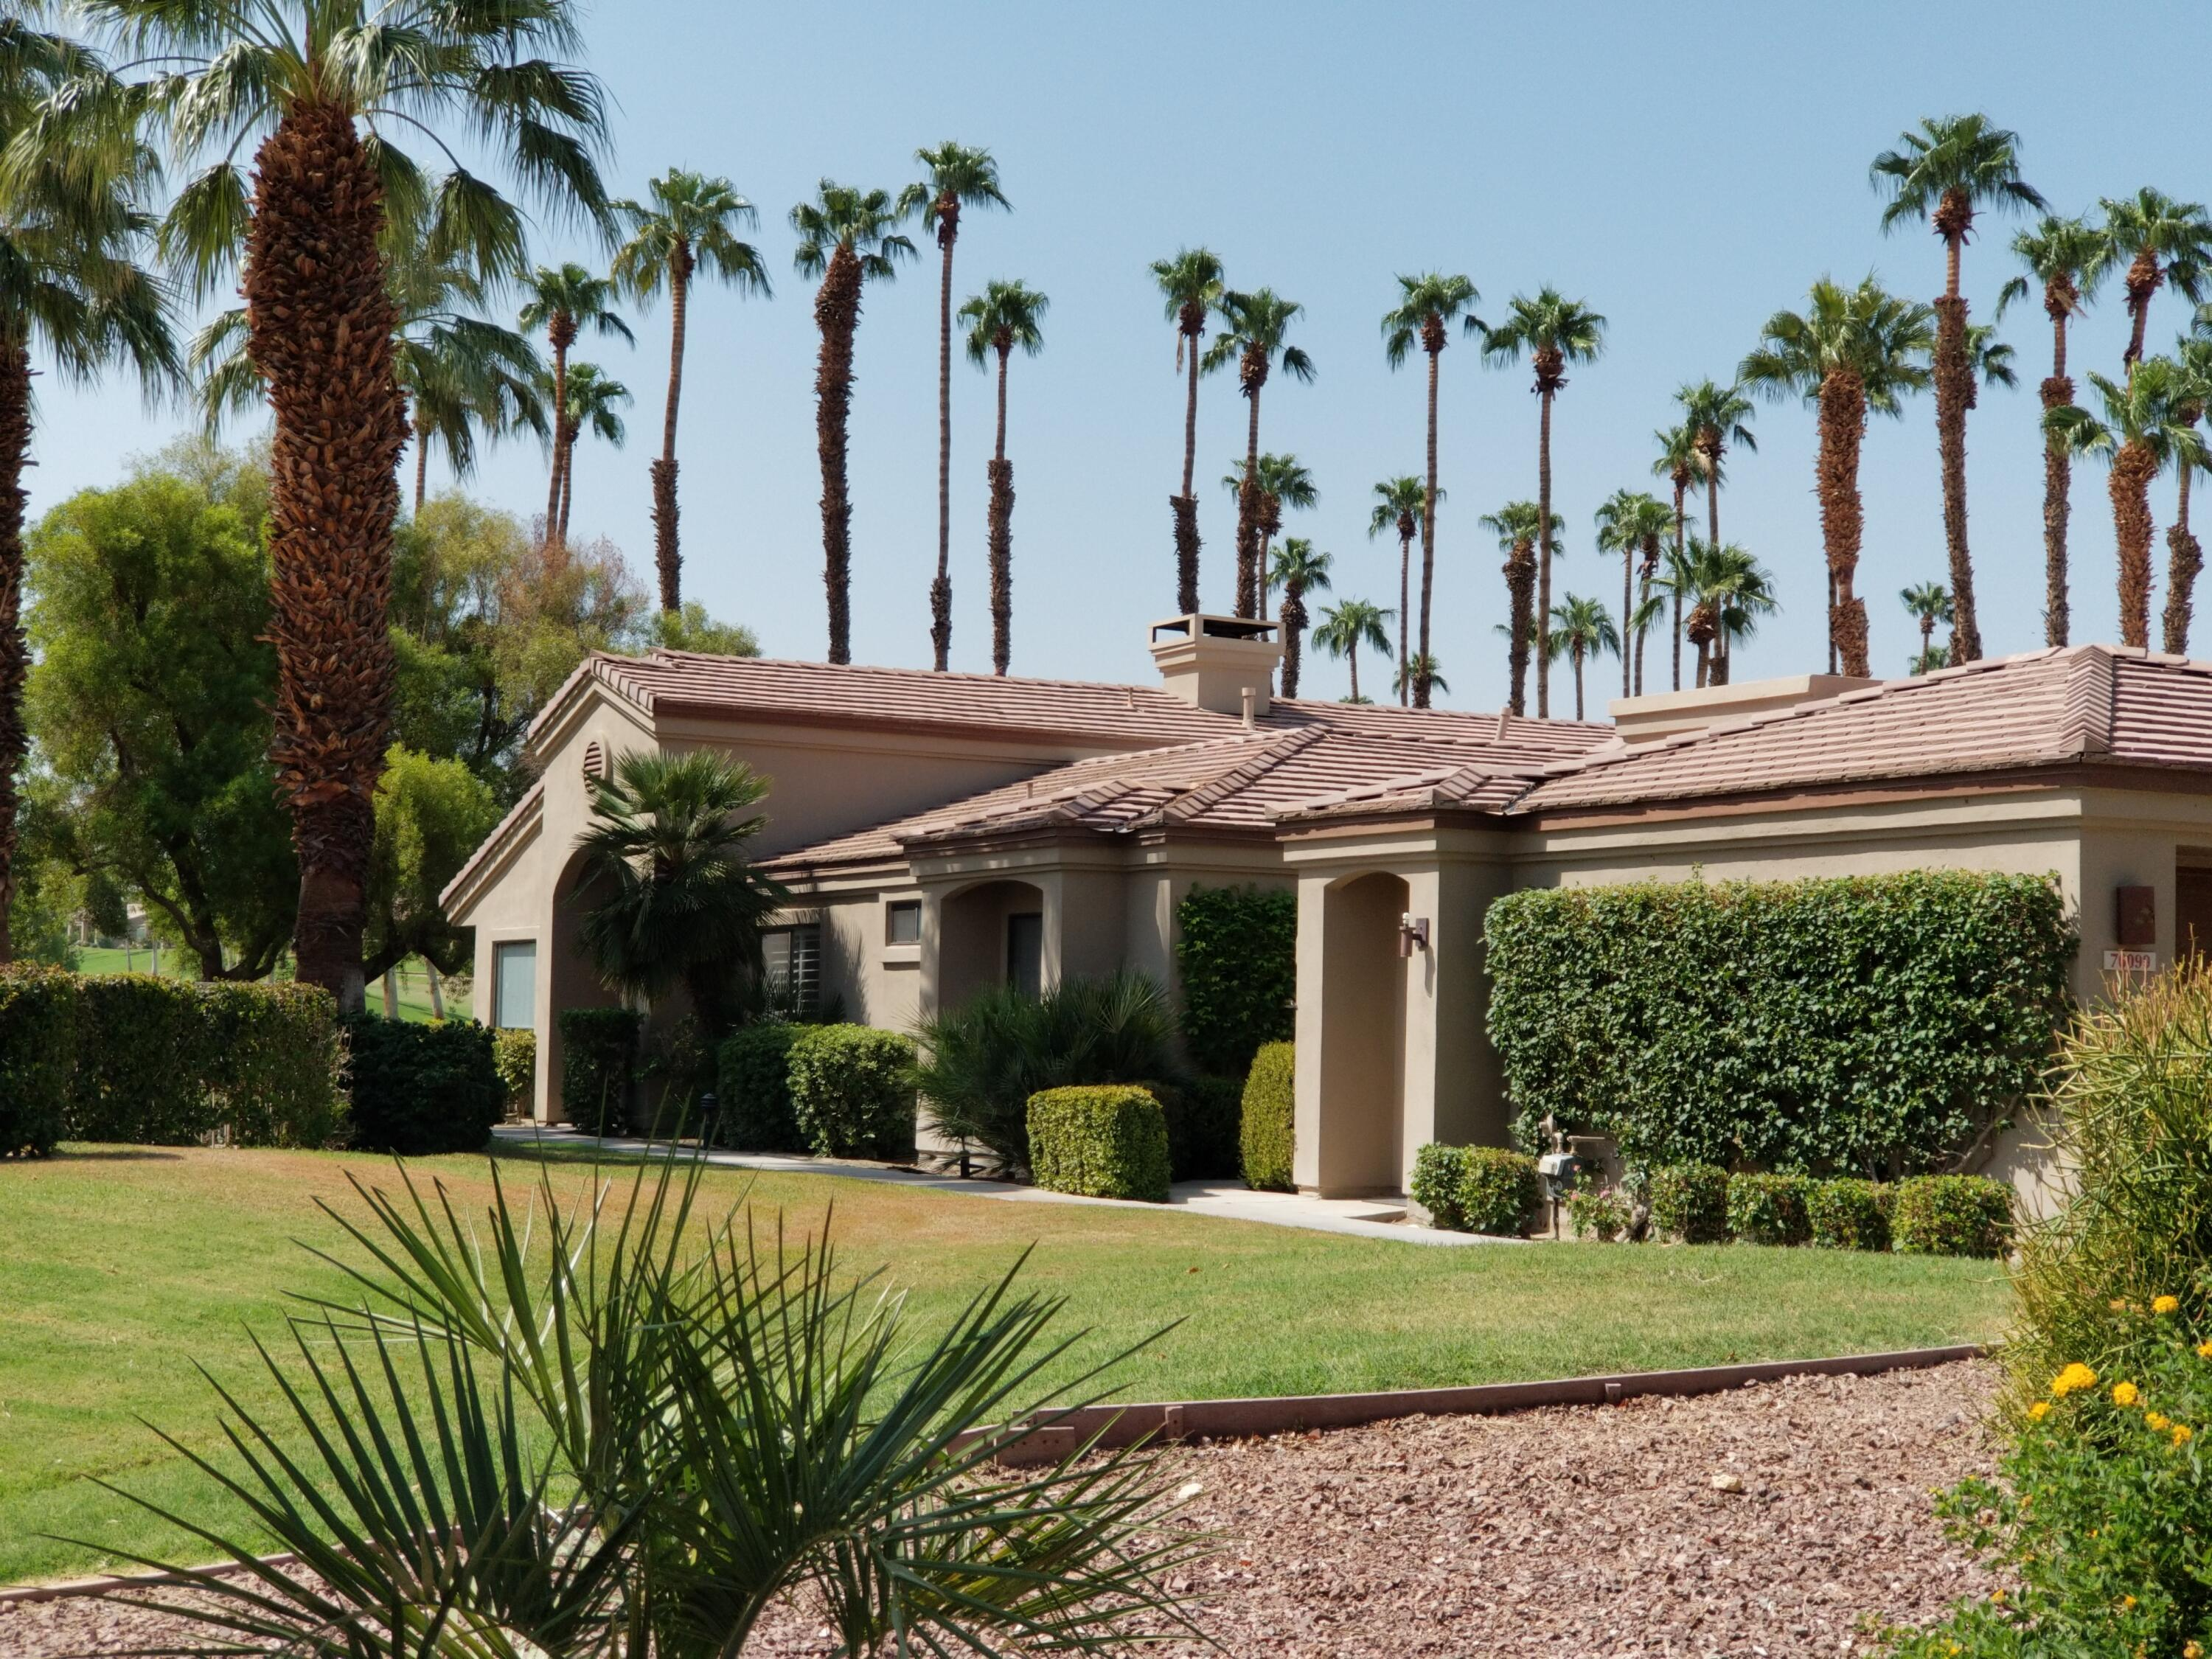 Welcome to Palm Valley Country Club ''THE FUN CLUB''.  This fully remodeled Cottonwood Plan is located in a rare parklike setting, surrounded by lush green common area landscaping.  Your front entry opens up to the community glistening pool and spa.  Gorgeous fairway views from the large glass patio doors, that seem to go on forever.  Imagine enjoying a BBQ on your patio and then relaxing in the bubbly in ground spa, just a few steps away.  One of the most beautifully designed and decorated homes in the club.  Orange County designer carefully selected coordinating tiles, stone and gorgeous cabinetry, along with complementing home furnishings and accessories.  Attention to every detail makes this a WOW!!  Location is a ''10''!!  3 bedroom and 2 baths..  Opened up flowing floorplan.  Palm Valley offers 2 18-hole golf courses, numerous tennis and pickleball courts, 2 restaurants with large lounge for meeting new friends, enjoying ''Small Plates'' or Pasta nights, in season live music (may depend on COVID restrictions). 100,000 sq ft clubhouse includes well equipped fitness center, spa services and hair/nail salon. Golf, tennis/pickleball/fitness all require additional membership fees.  Once you get here, you will never want to leave!!